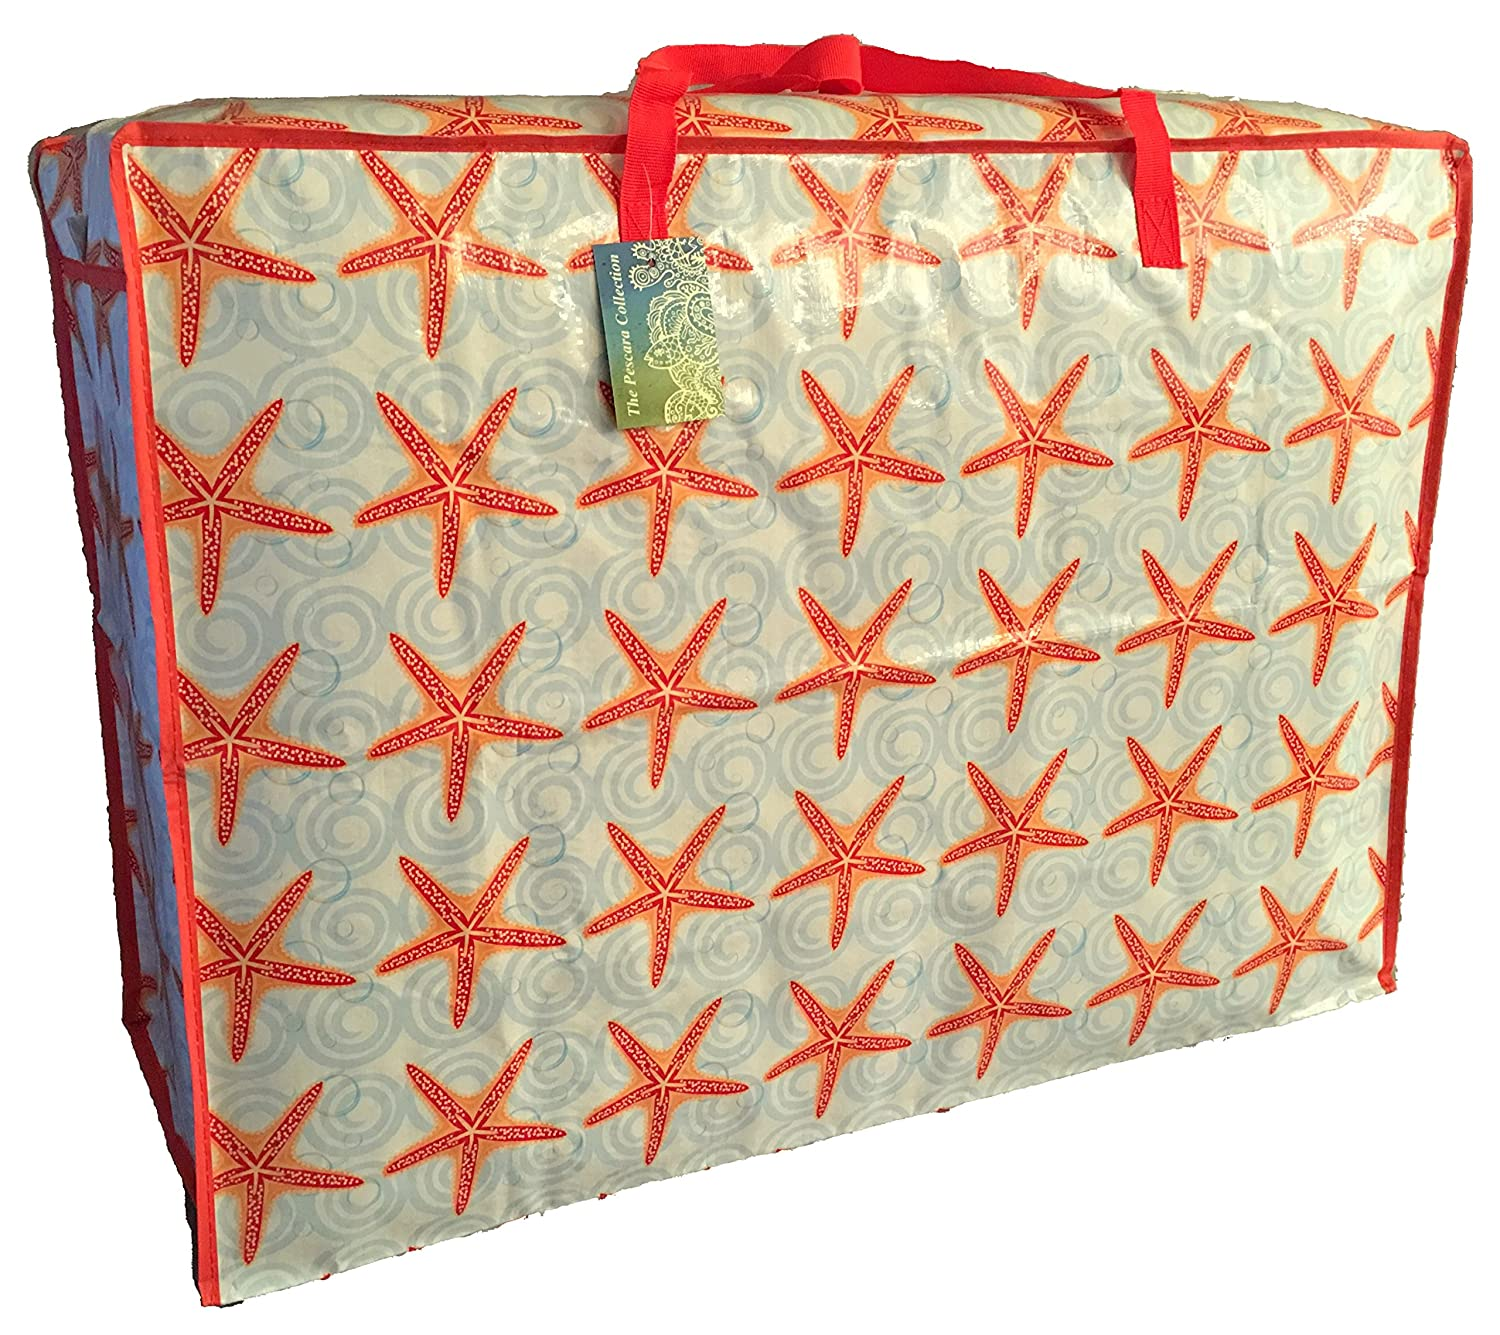 Extra Large storage bag 115 litres. Red Starfish pattern. Toys, washing and laundry bag The Pescara Collection